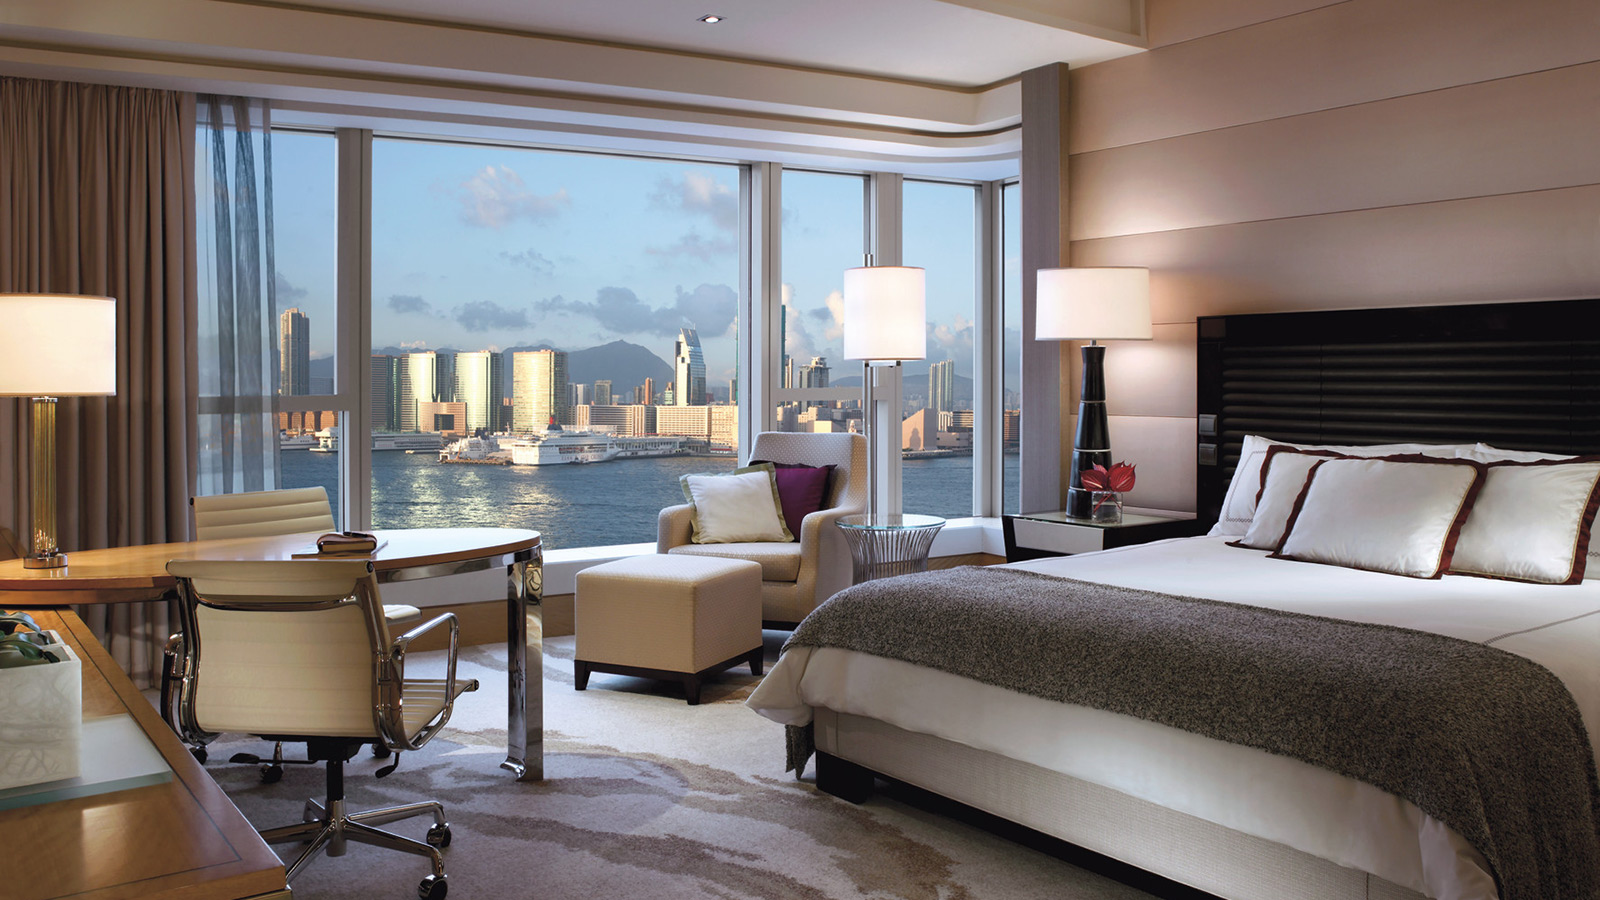 Check Out Room Rates at Four Seasons Hotel Hong Kong, a Luxury Hotel in Hong Kong